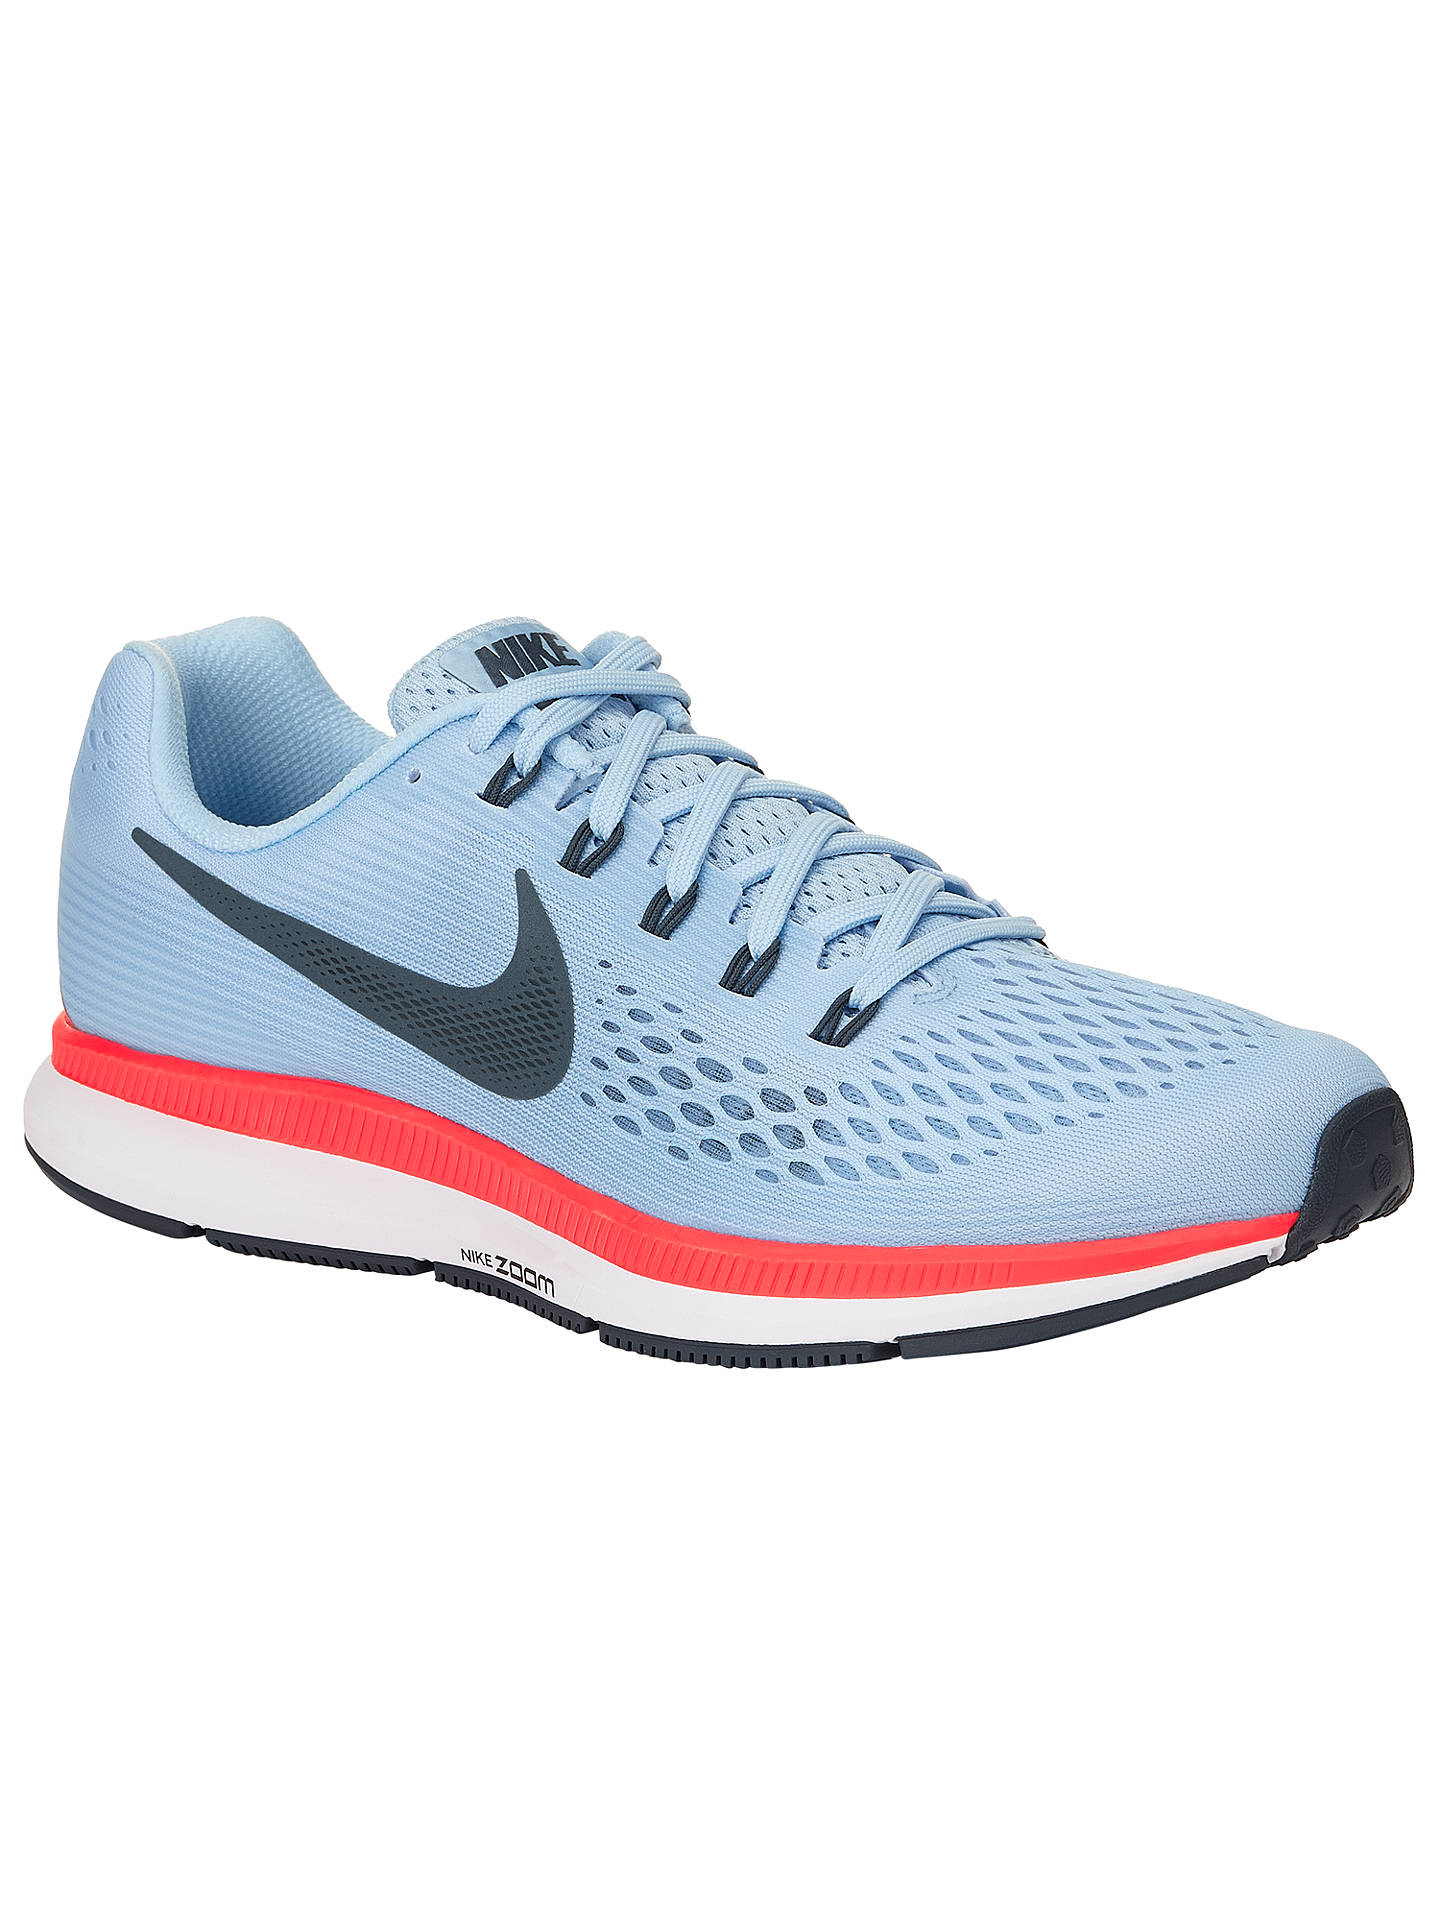 131204022384e Buy Nike Air Zoom Pegasus 34 Men s Running Shoes